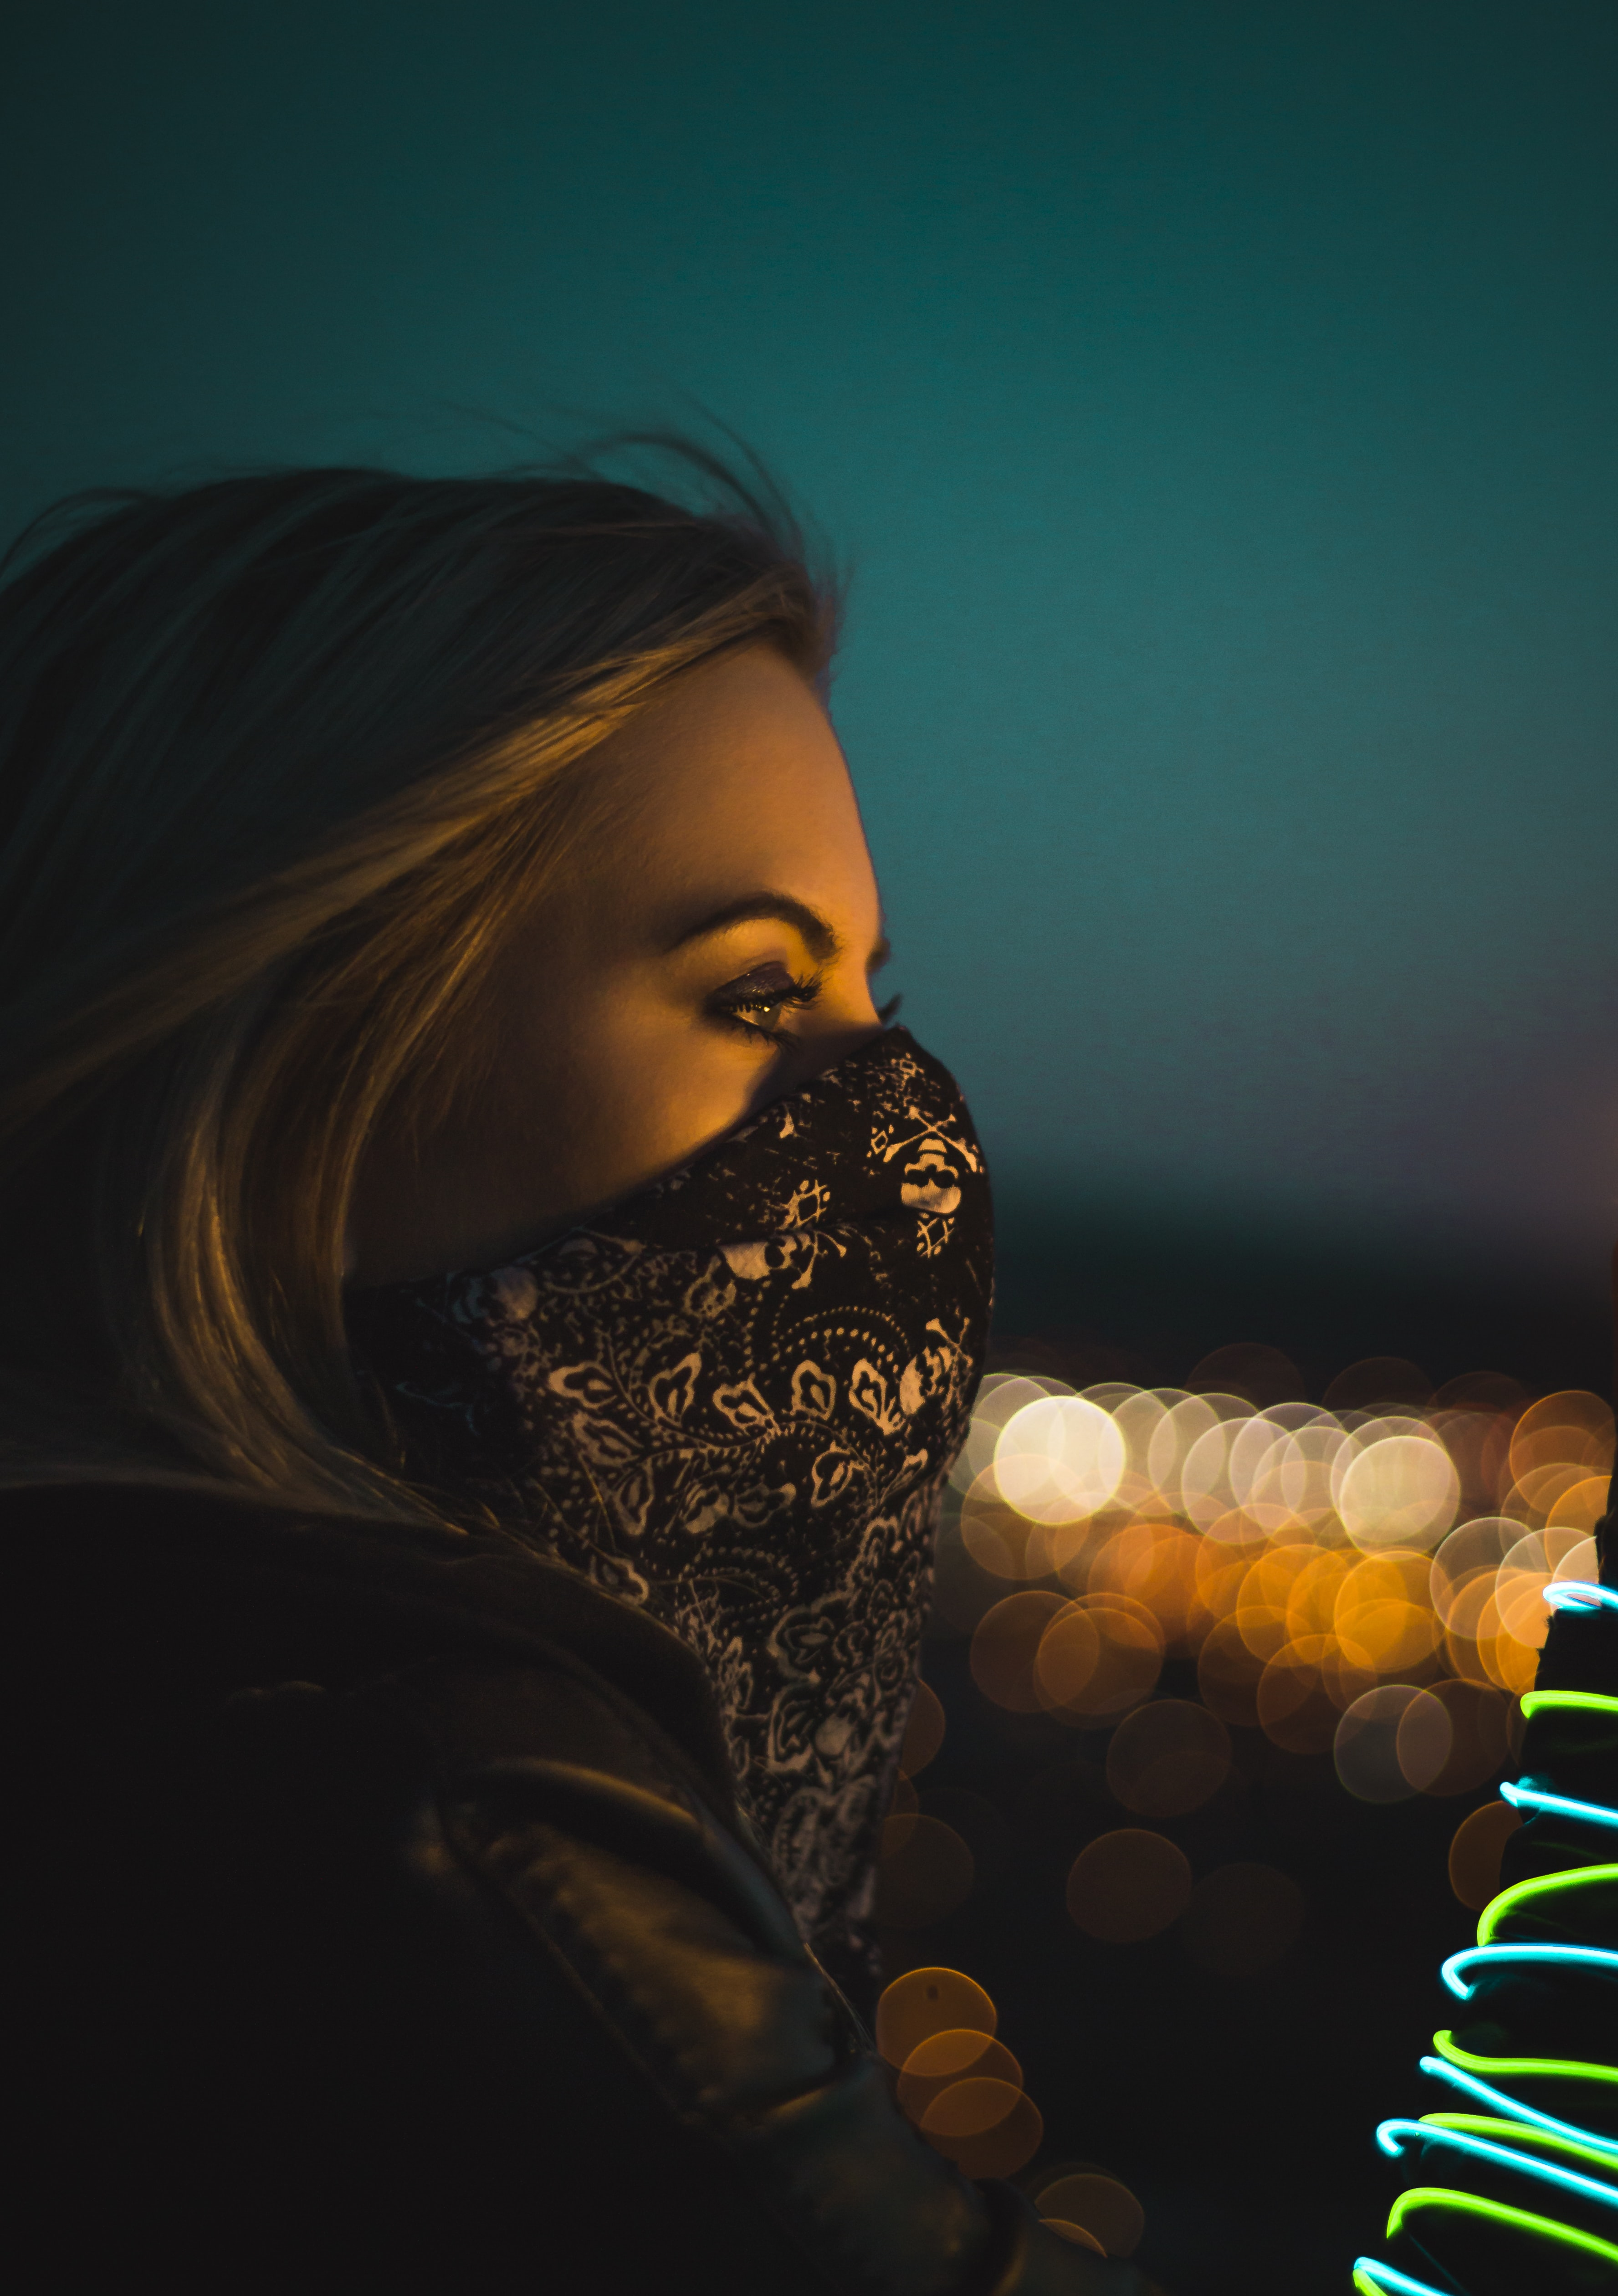 woman wearing black and white floral face mask during nighttime